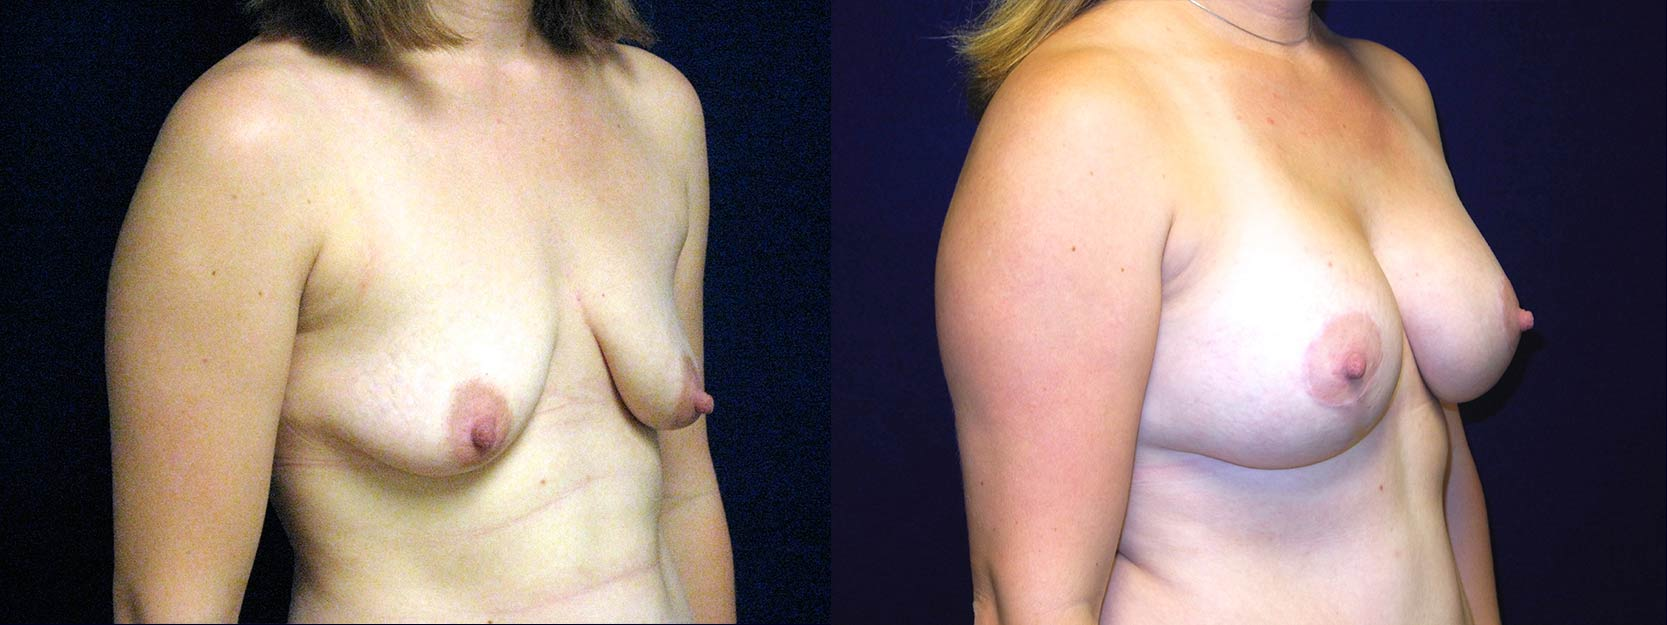 Right 3/4 View - Breast Augmentation After Pregnancy